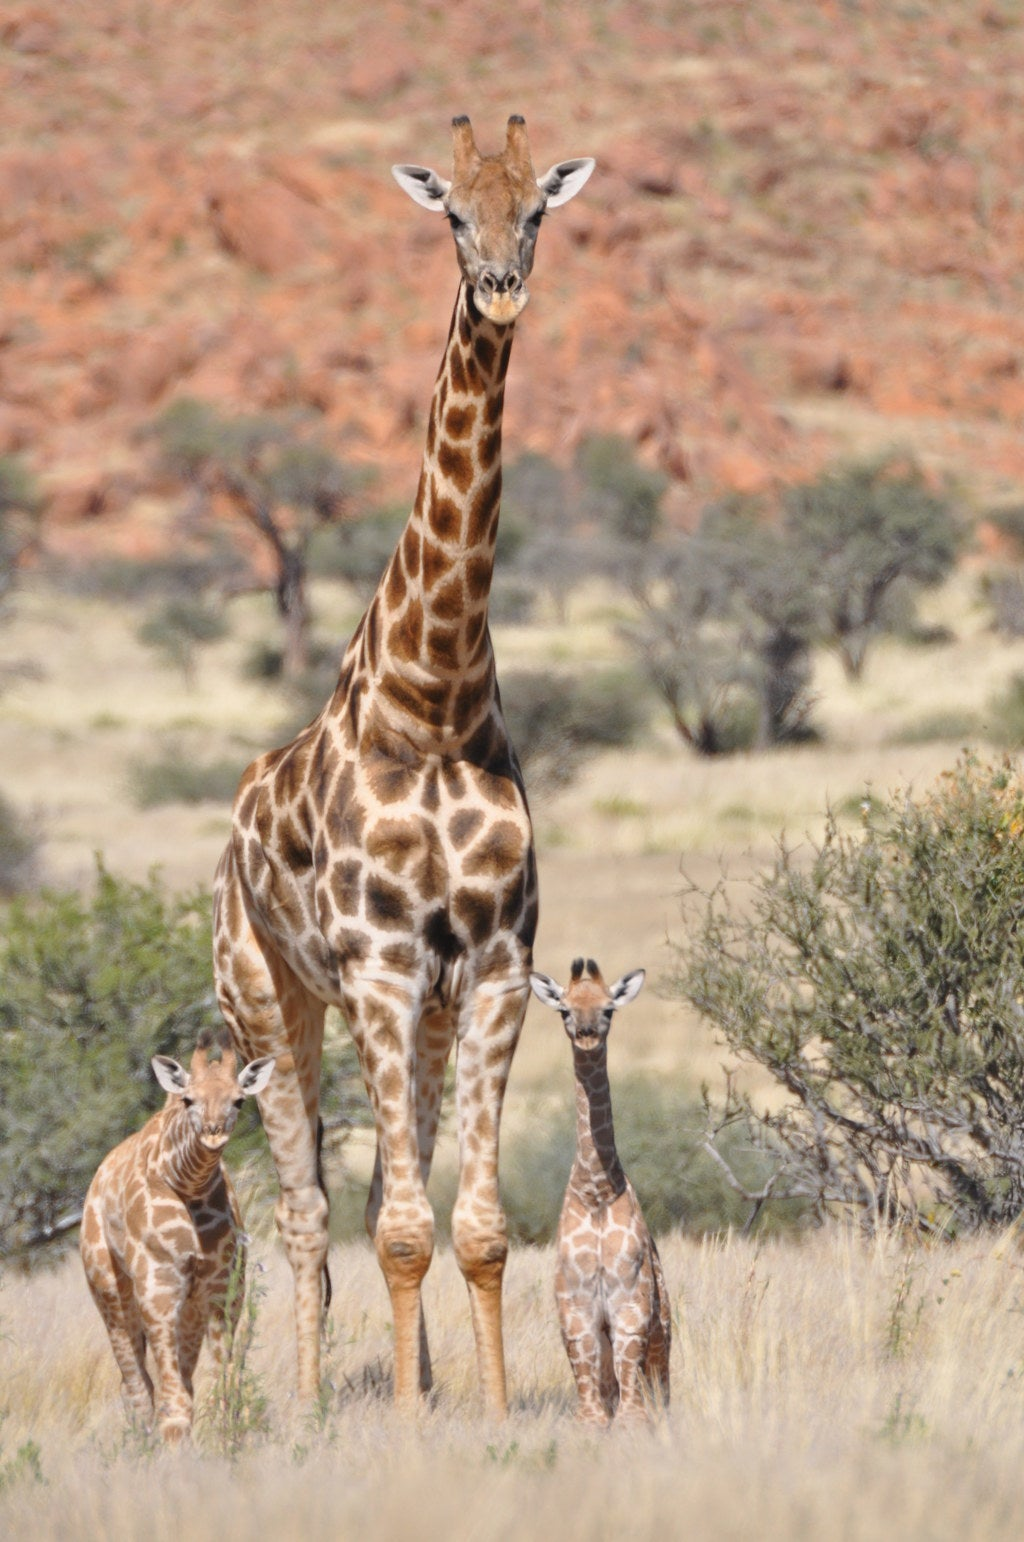 A male giraffe with two calves.